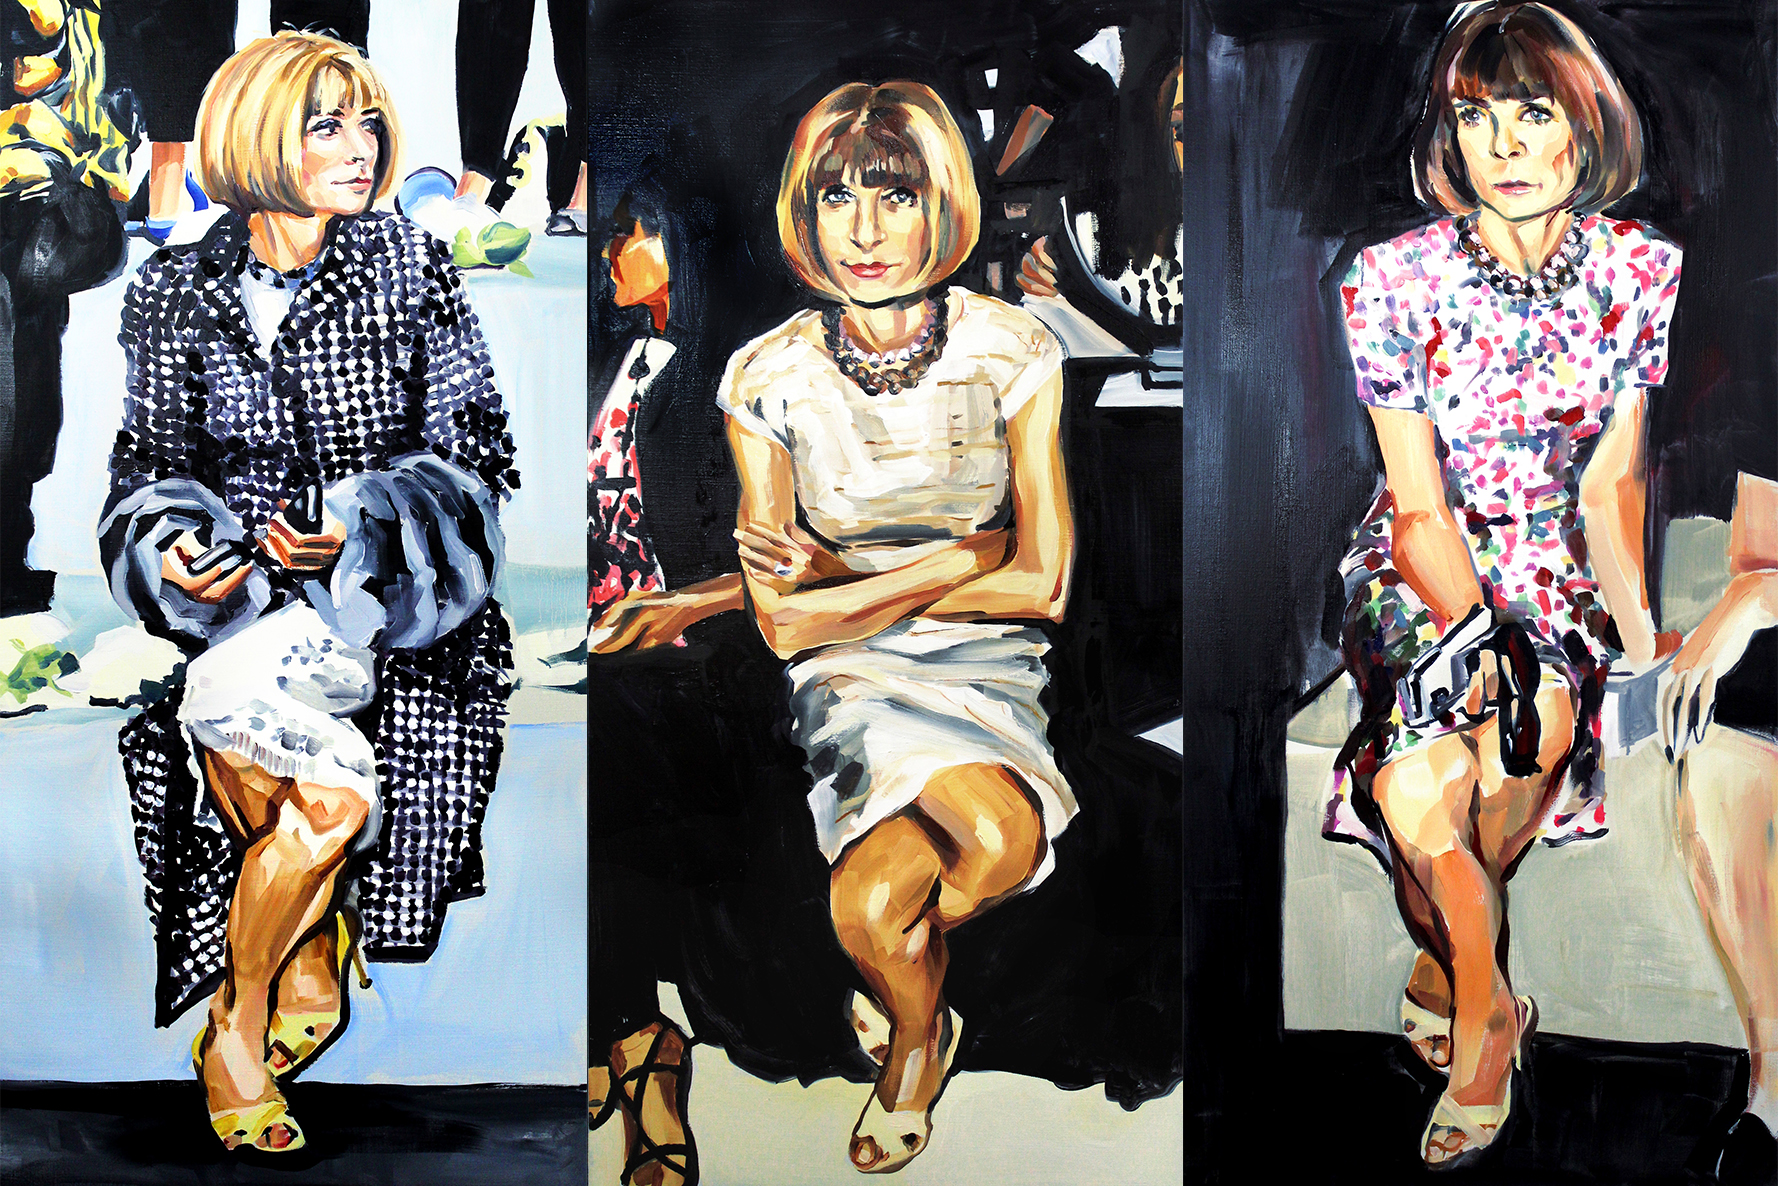 Anna-Wintour-Double-Crossing-Her-Legs-THNK-1994-Laura-Collins.jpg